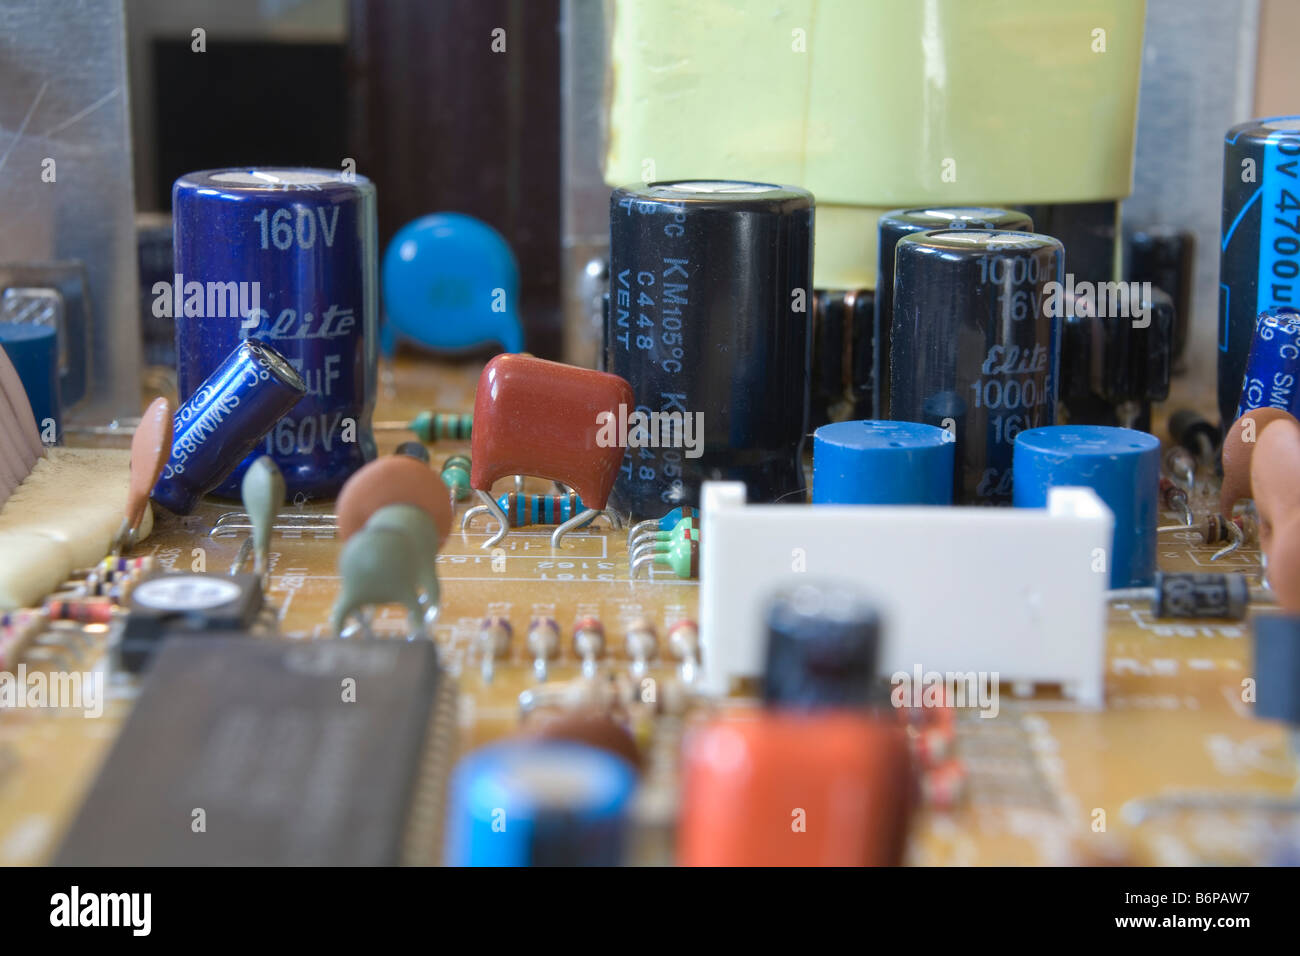 Electrolytic capacitors standing tall on an electronic circuit board - Stock Image